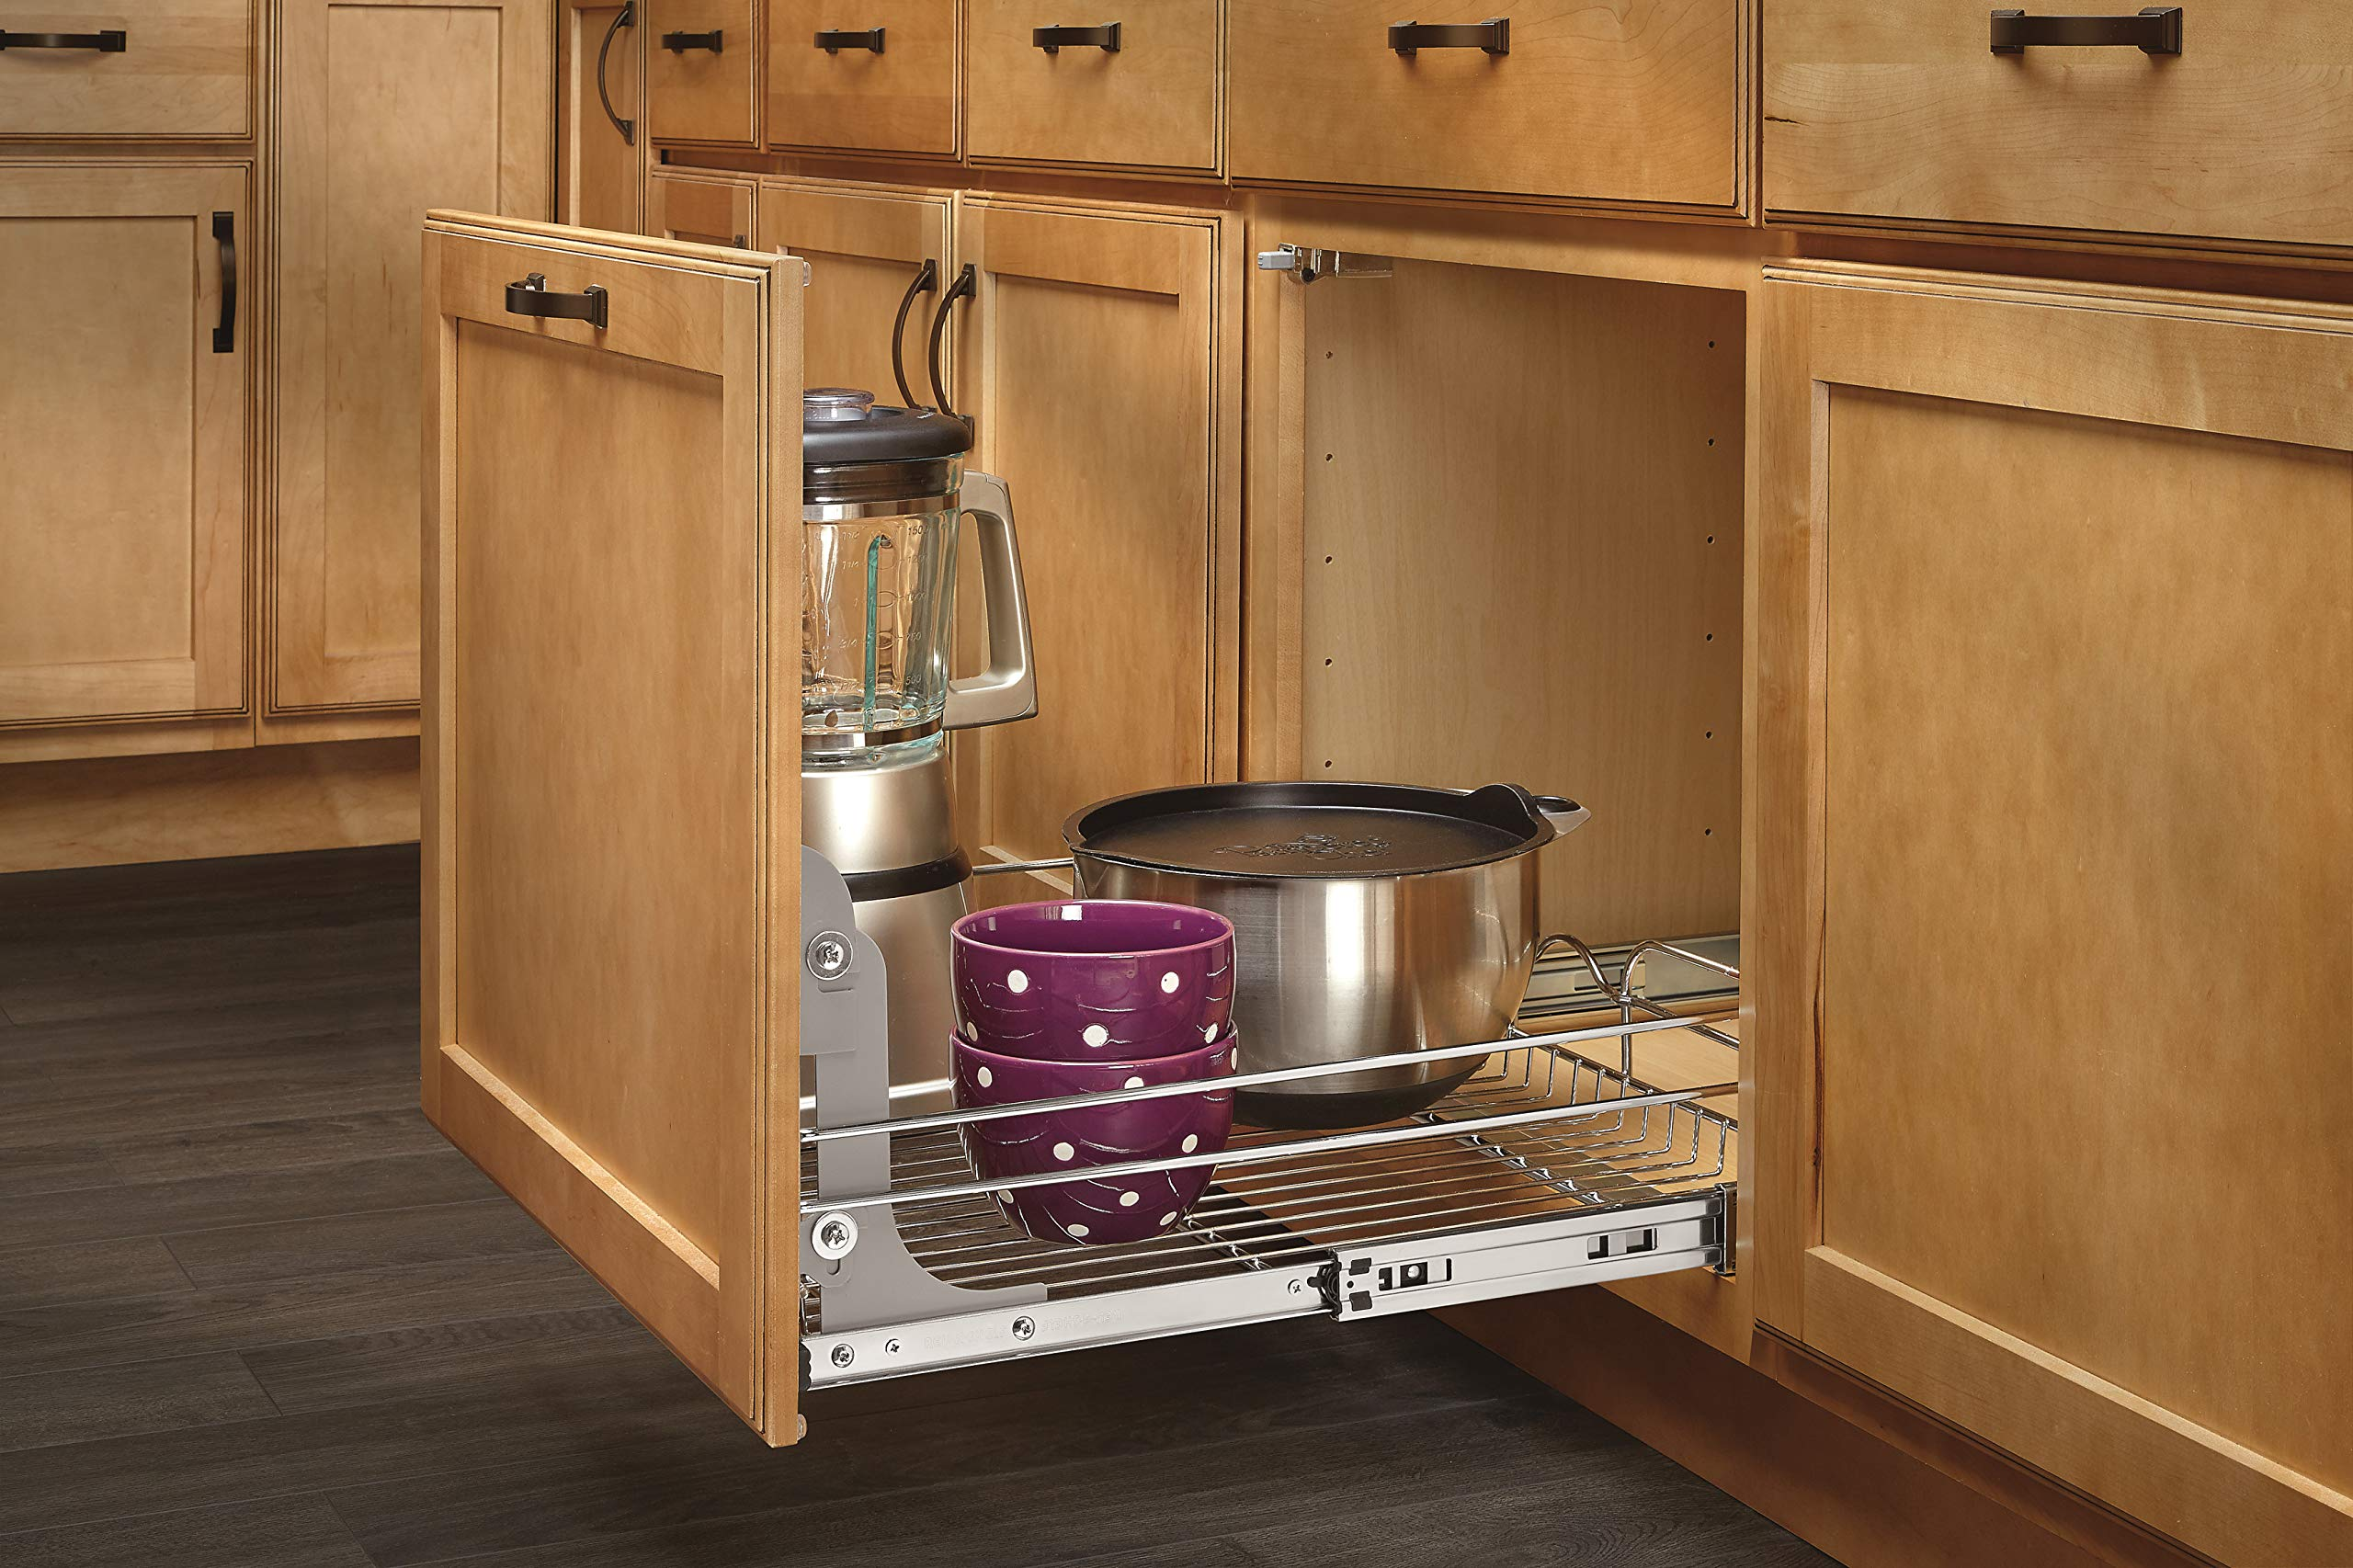 Rev-A-Shelf - 5WB1-2122-CR - 21 in. W x 22 in. D Base Cabinet Pull-Out Chrome Wire Basket by Rev-A-Shelf (Image #2)